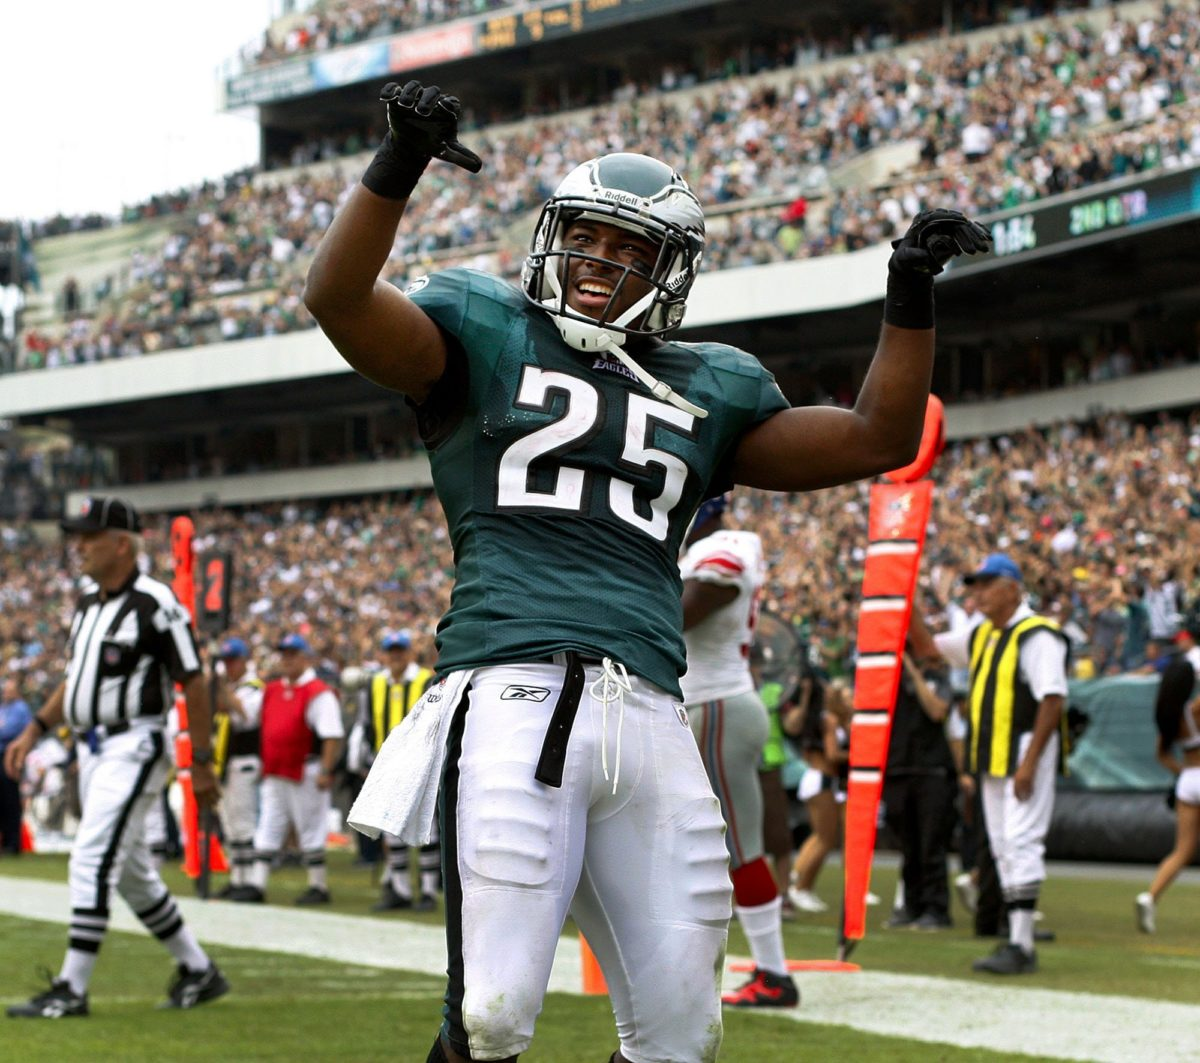 Philadelphia Eagles RB LeSean McCoy announces ALS charity event in …